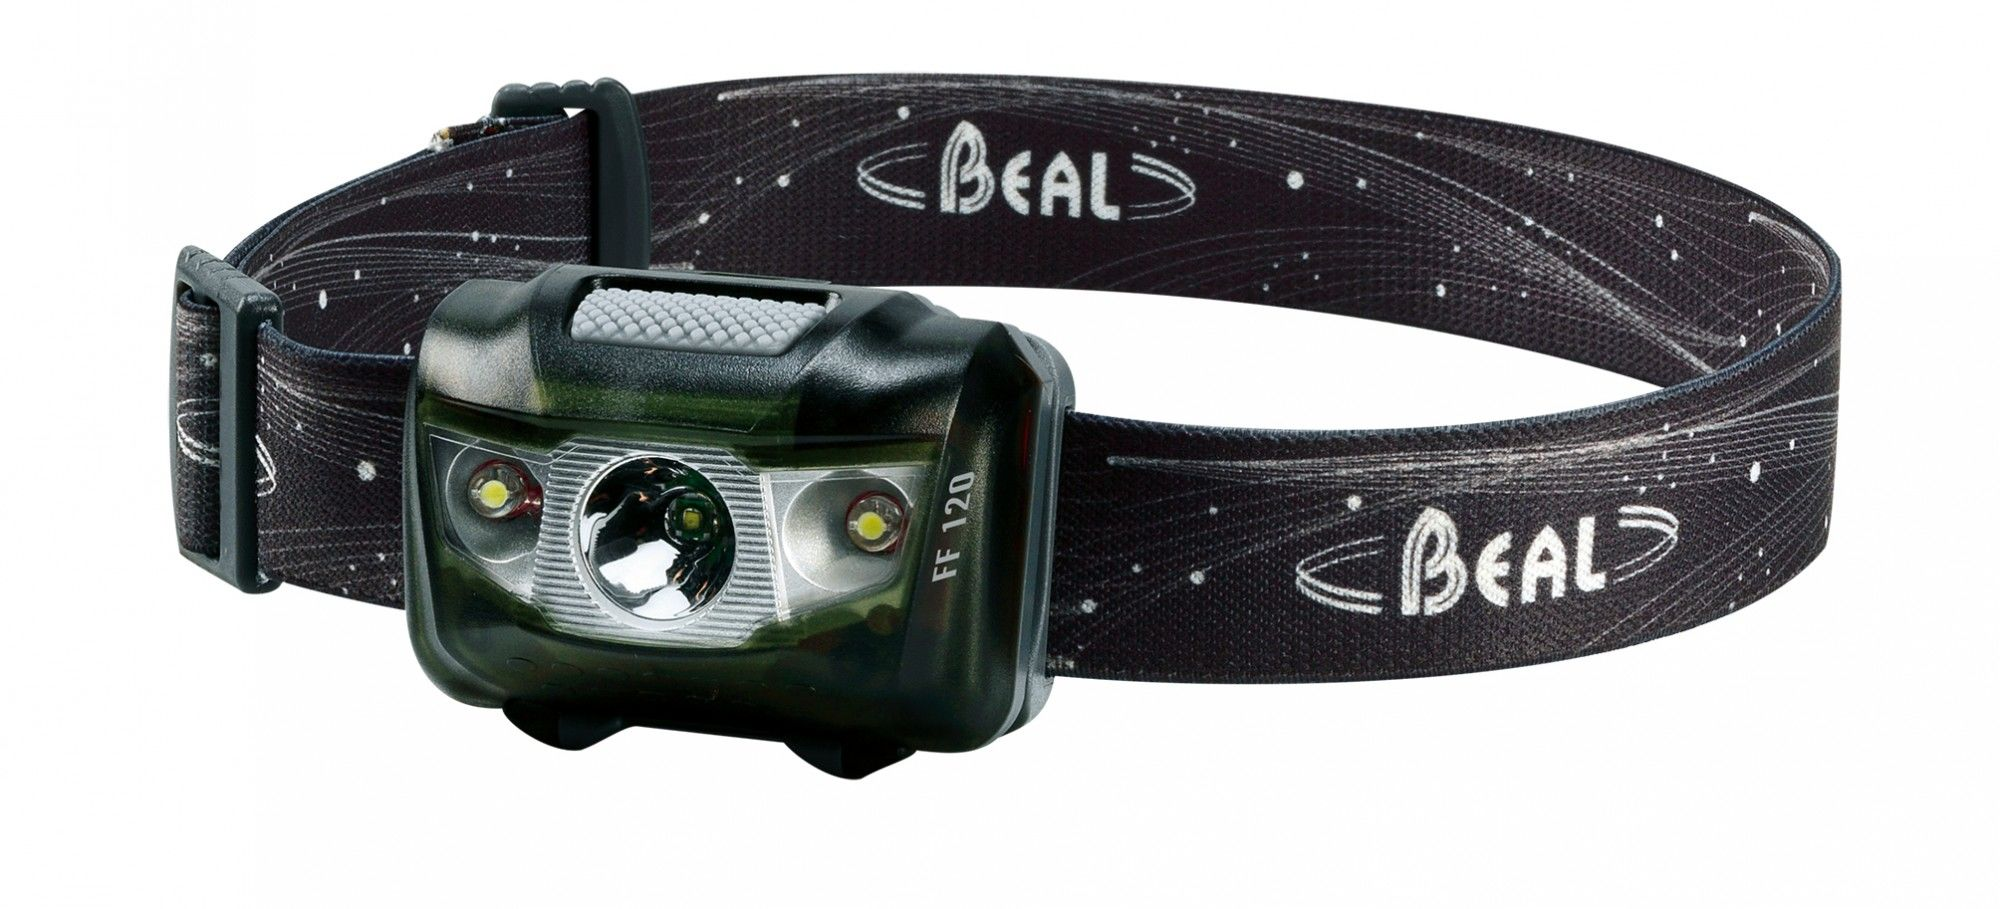 Beal Ff120 Schwarz, One Size -Farbe Black, One Size